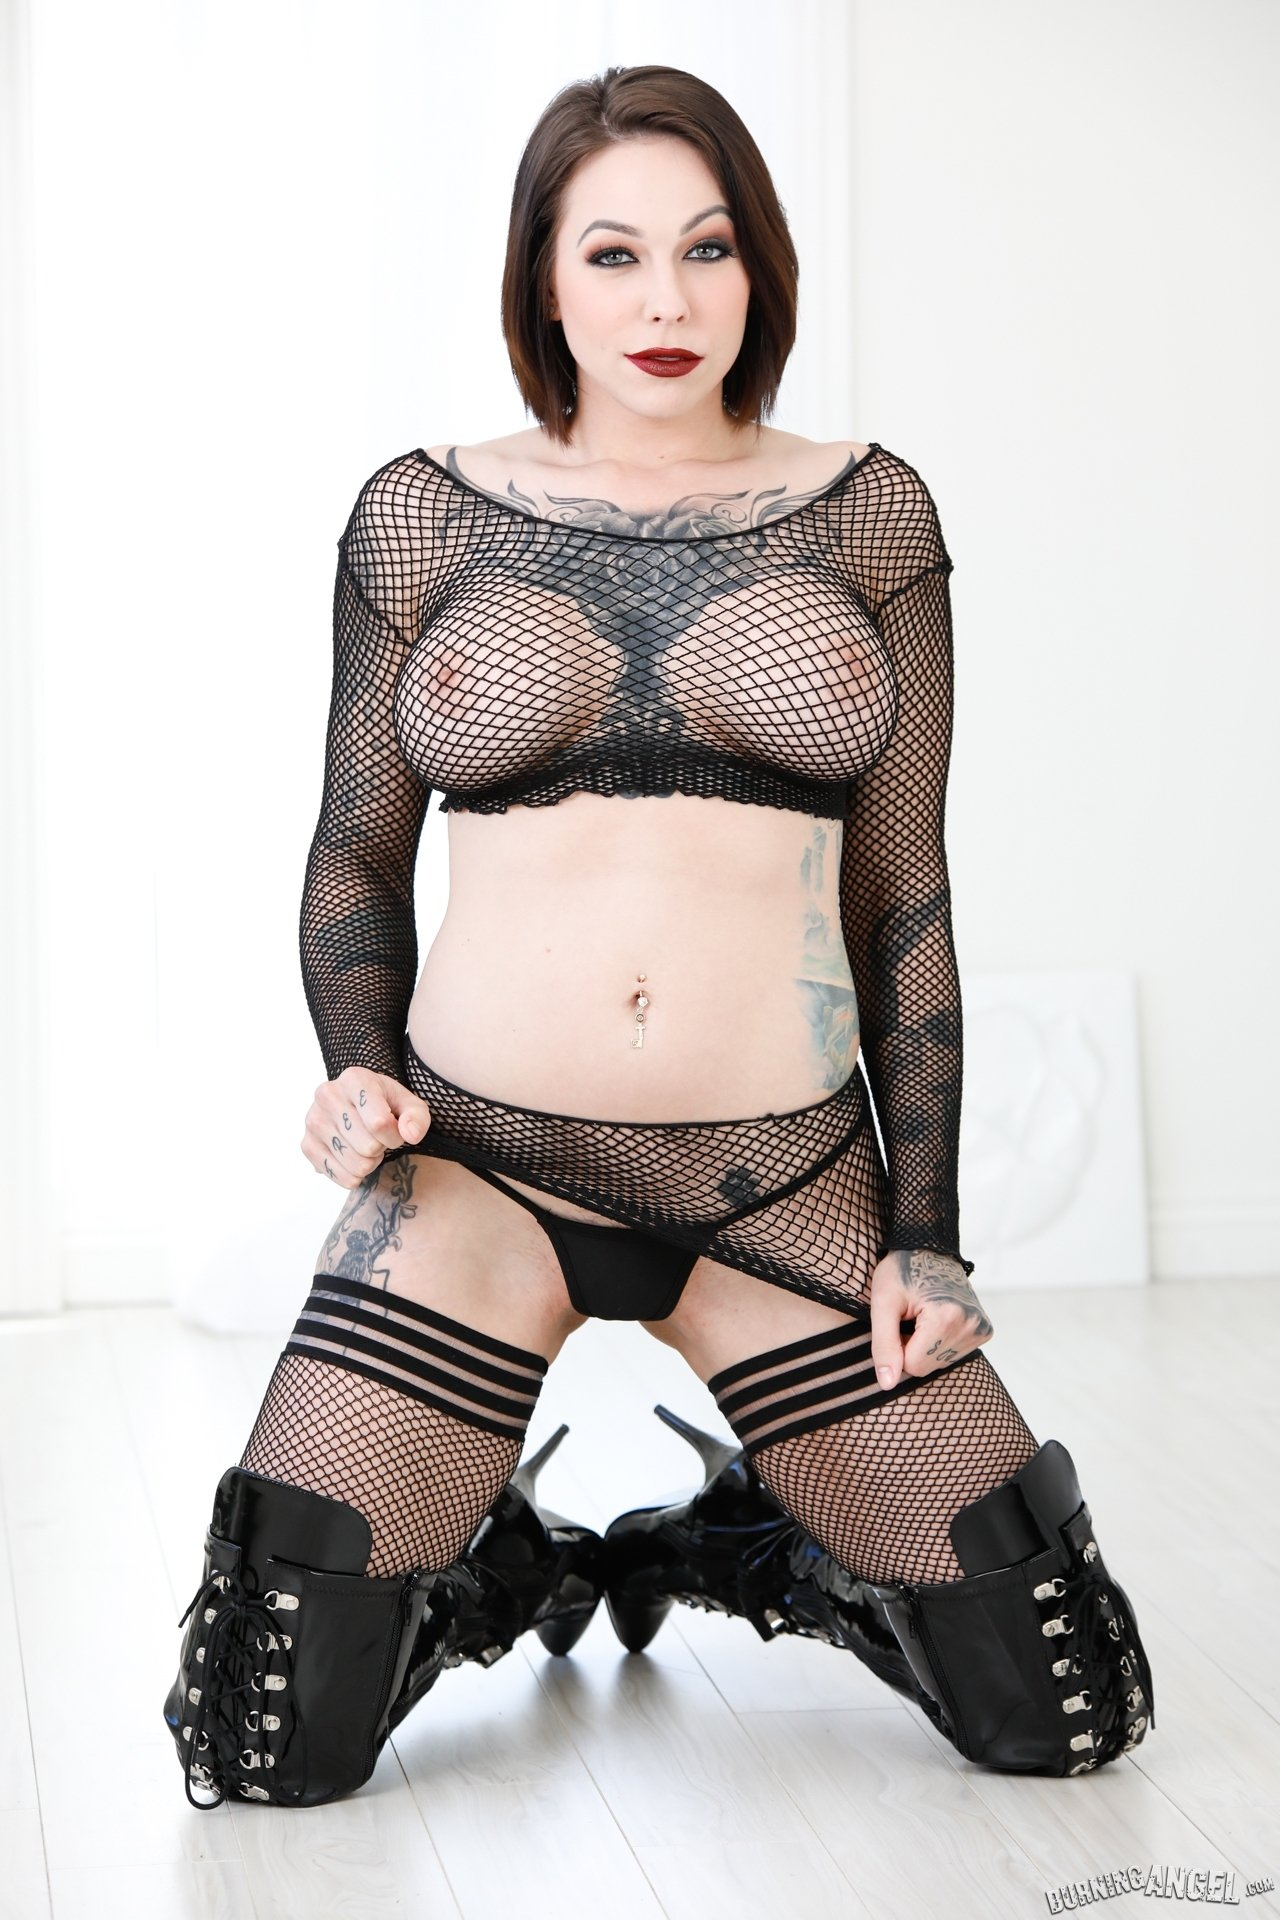 the stripper experience jessica jaymes there